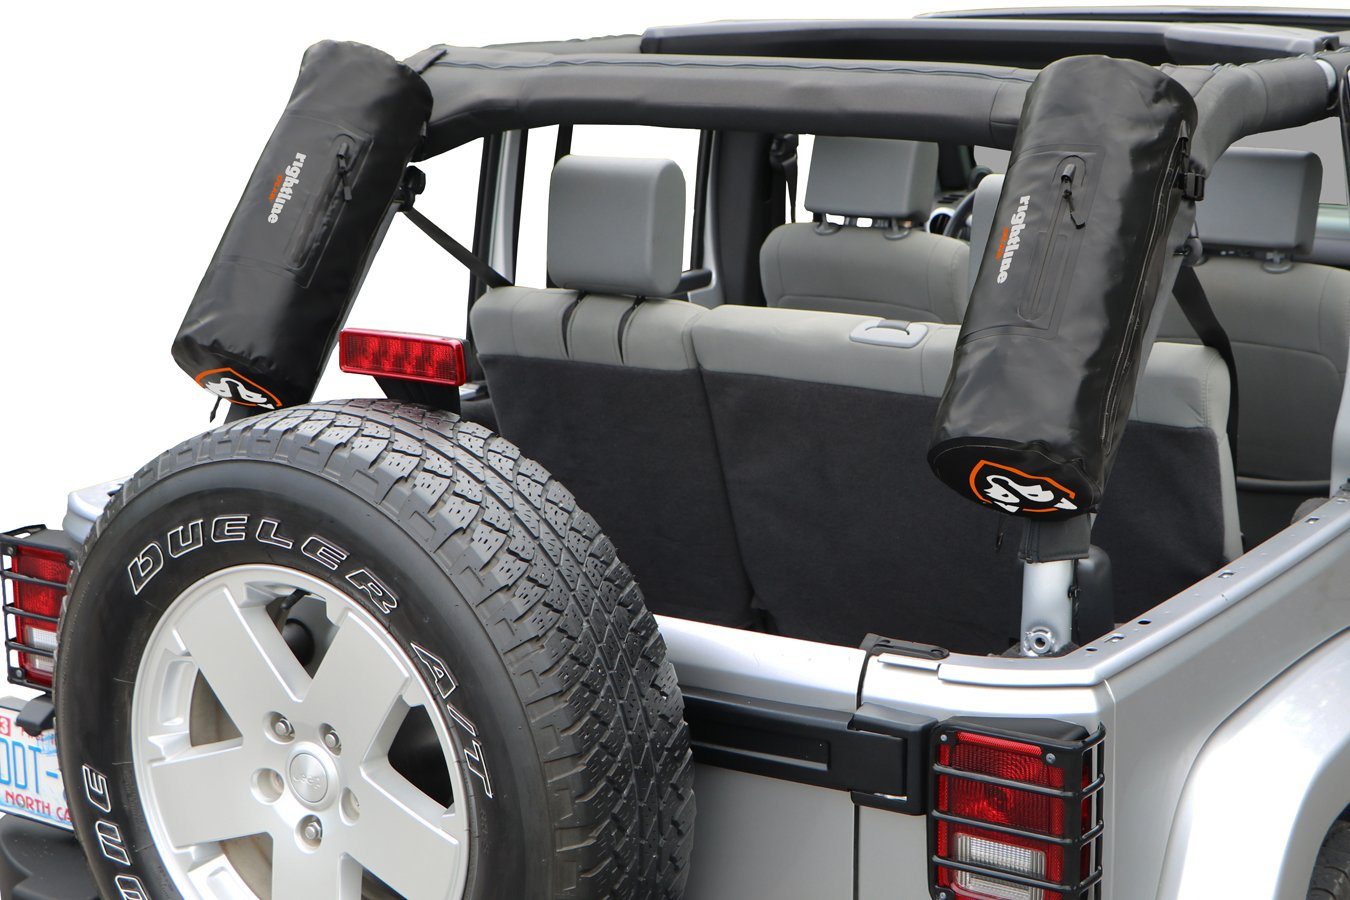 Rightline jeep storage bags jeep wrangler cargo solutions ship free for Jeep wrangler interior accessories